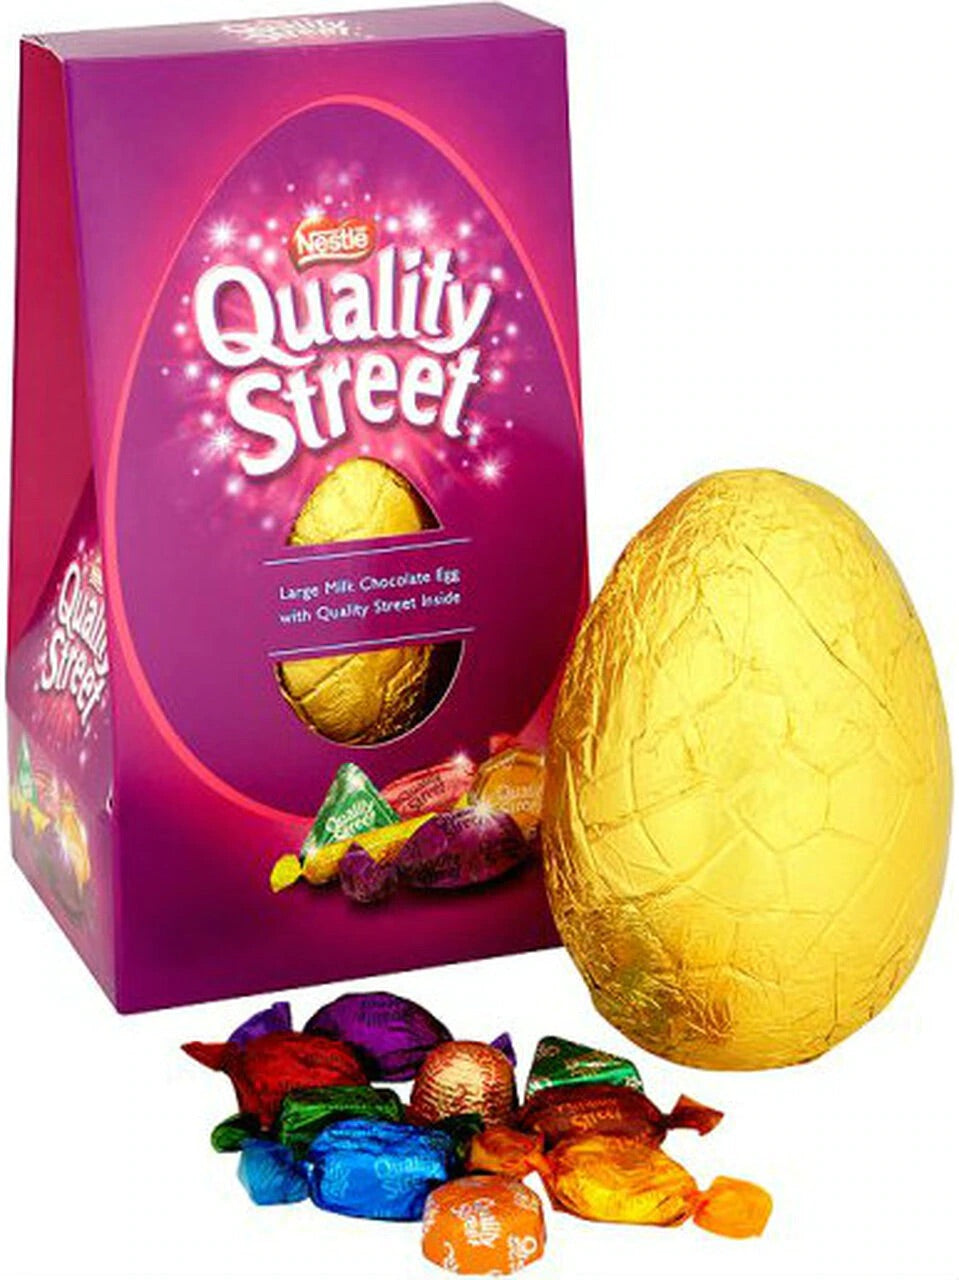 Easter - Quality Street Giant Egg